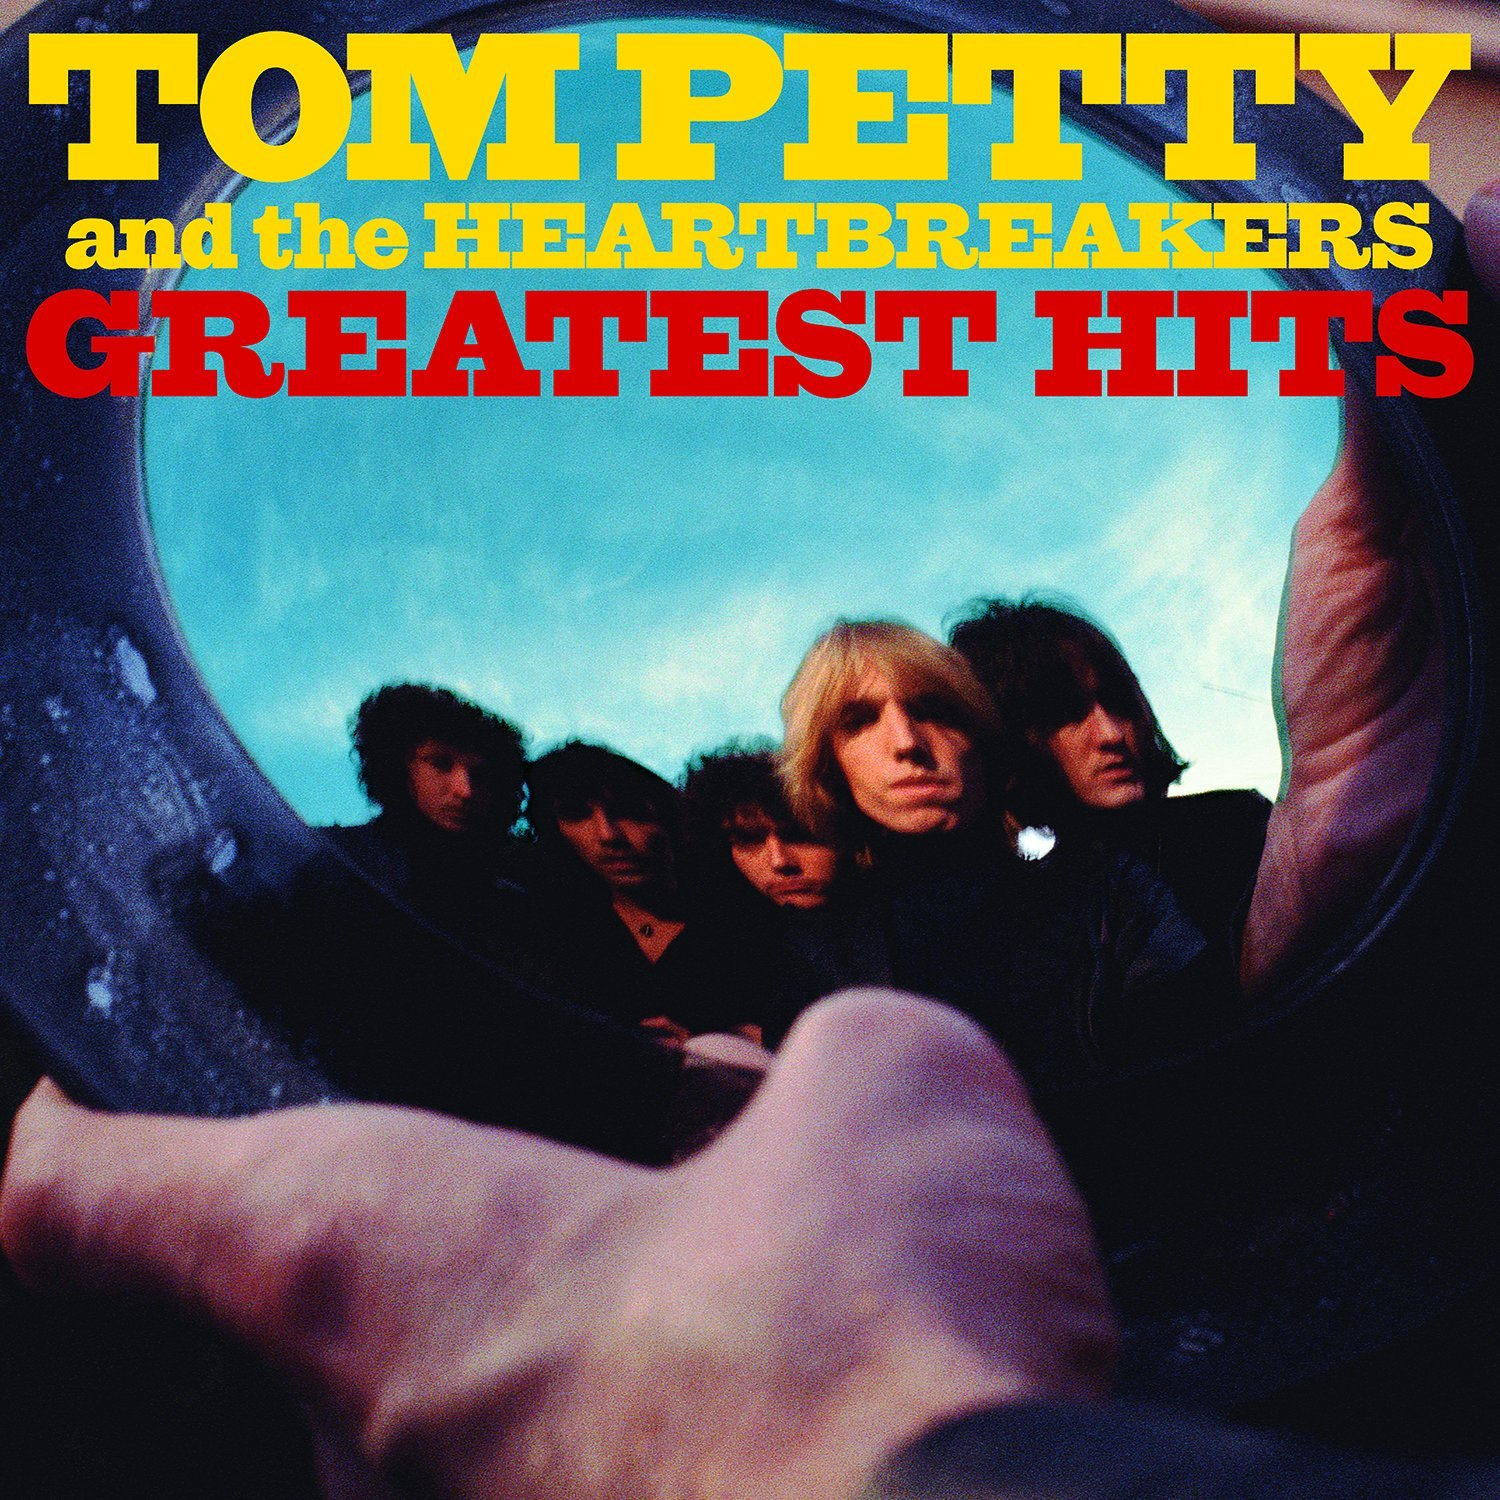 Tom Petty and The Heartbreakers - Greatest Hits (2008) [FLAC] Download